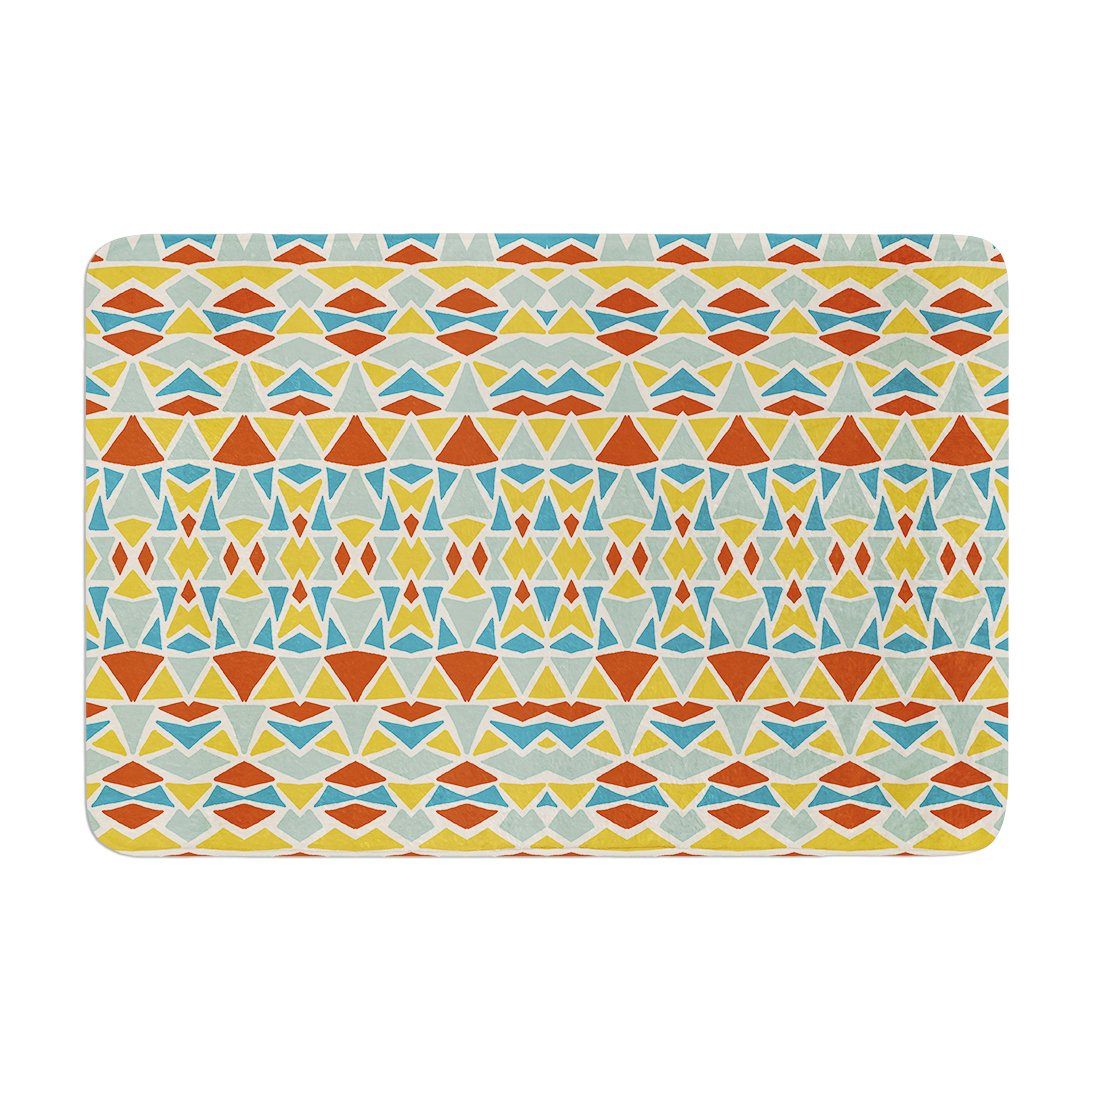 17 by 24 Kess InHouse Pom Graphic Design Tribal Imagination Red Yellow Memory Foam Bath Mat